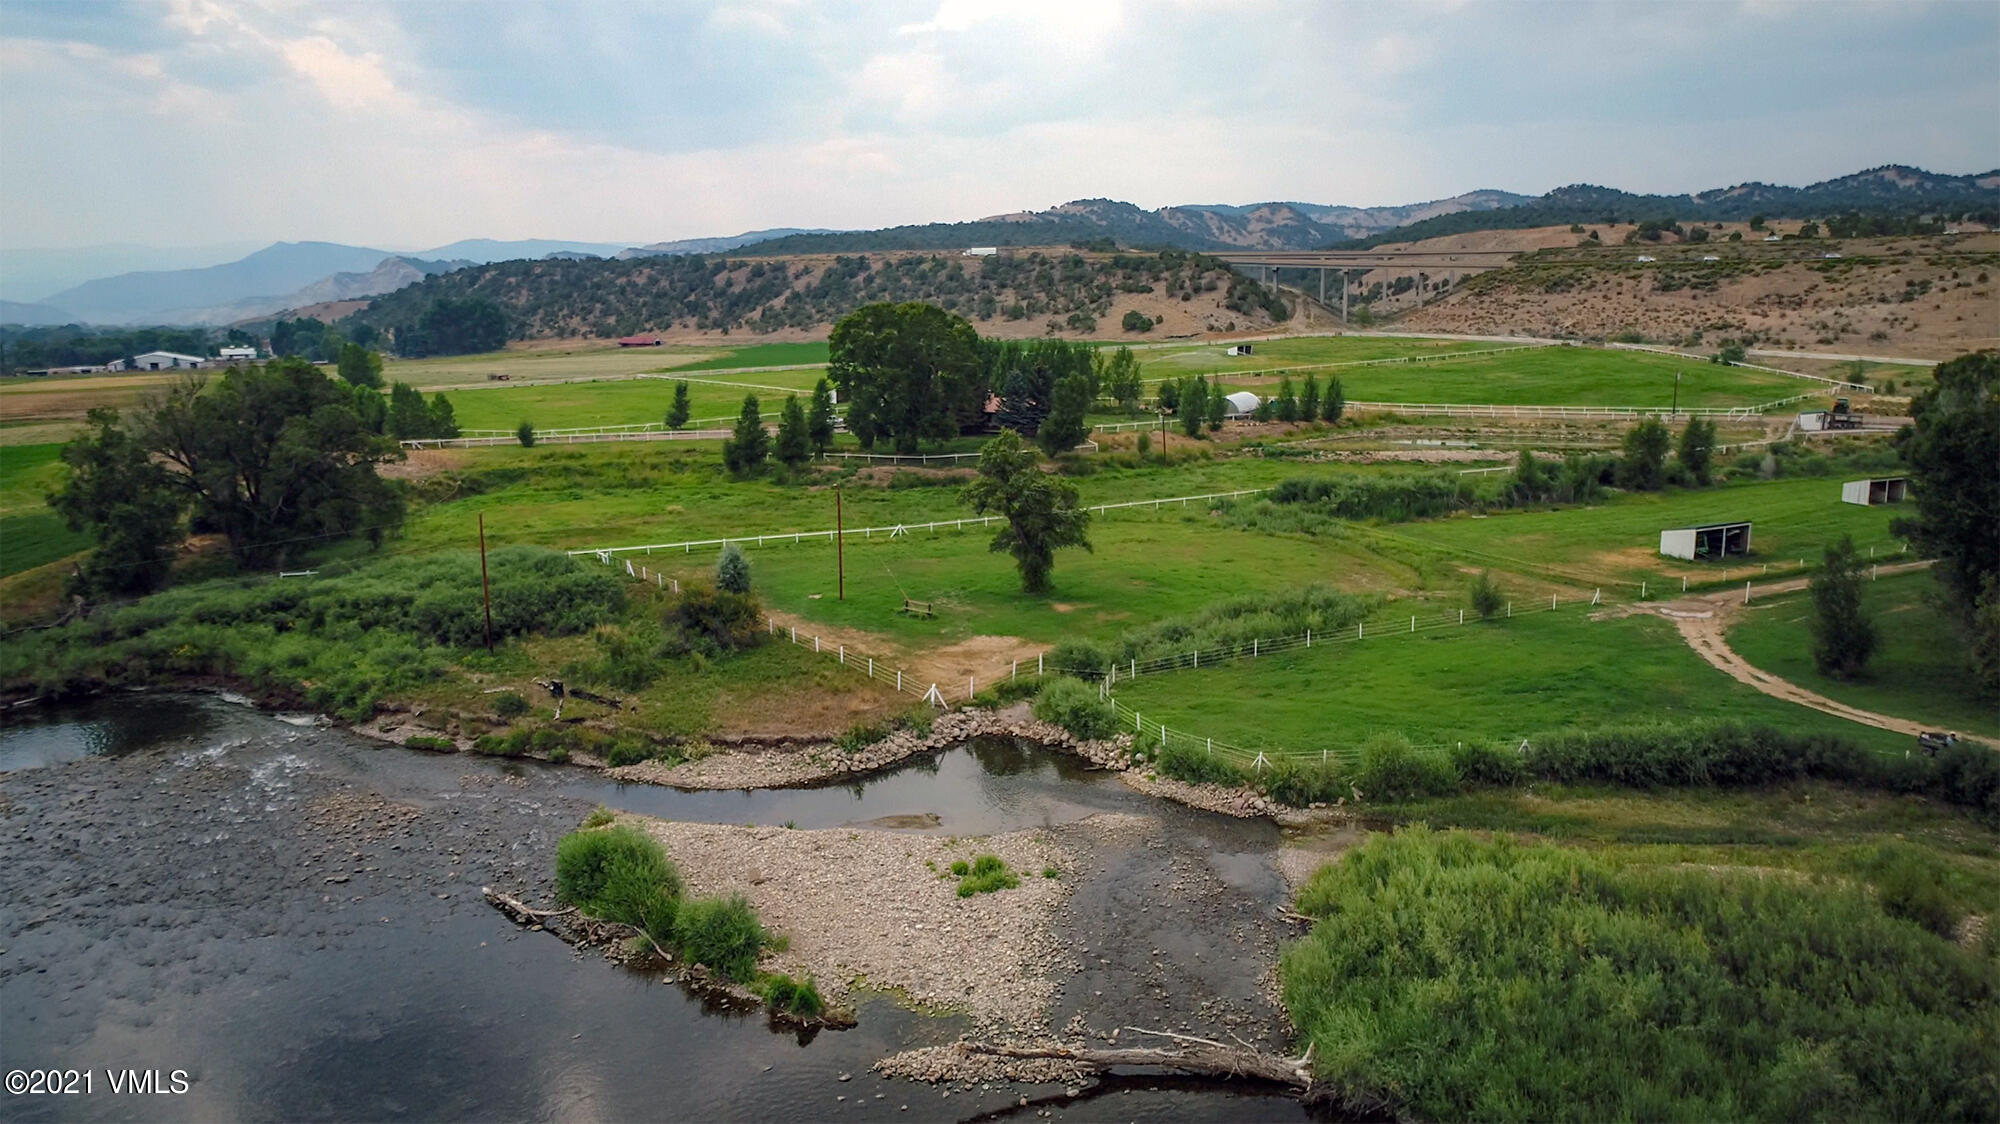 This Stunning Ranch property is located in Eagle, Co. with space and amenities for multiple horses, or just simply enjoy the privacy of your property in this Gated Community. The home on the property is south facing, grab a cup of coffee and watch the sunrise along side your own Private Stretch of the Eagle River. Offering 35 acres, with world class fishing out your front door, 11 Fully irrigated and fenced lush green pastures, outdoor arena, round pen, several out buildings, and water rights! Ride out of your back door and explore endless trails with direct access to BLM Land. This property is 100% usable land, and produces over 15 tons of Hay per year. Including a cozy and quaint updated Single Family Home, with a lock-off, or caretakers unit. This property is located just off of Highway 6, and is in a prime location with Quick and easy access to I-70, downtown eagle, or just 30 minutes to Glenwood Springs, Beaver Creek or Vail for world class skiing all while in a tranquil and private setting. Eagle has grown into a beautiful town and a great community fill with Golfing, Mountain Biking, Hiking, Bike Paths, Local Events and Entertainment. Costco just 5 minutes down the road, and plenty of restaurants 10 minutes away if you enjoy a night out every now and then. Rarely does such a gem come to the market!